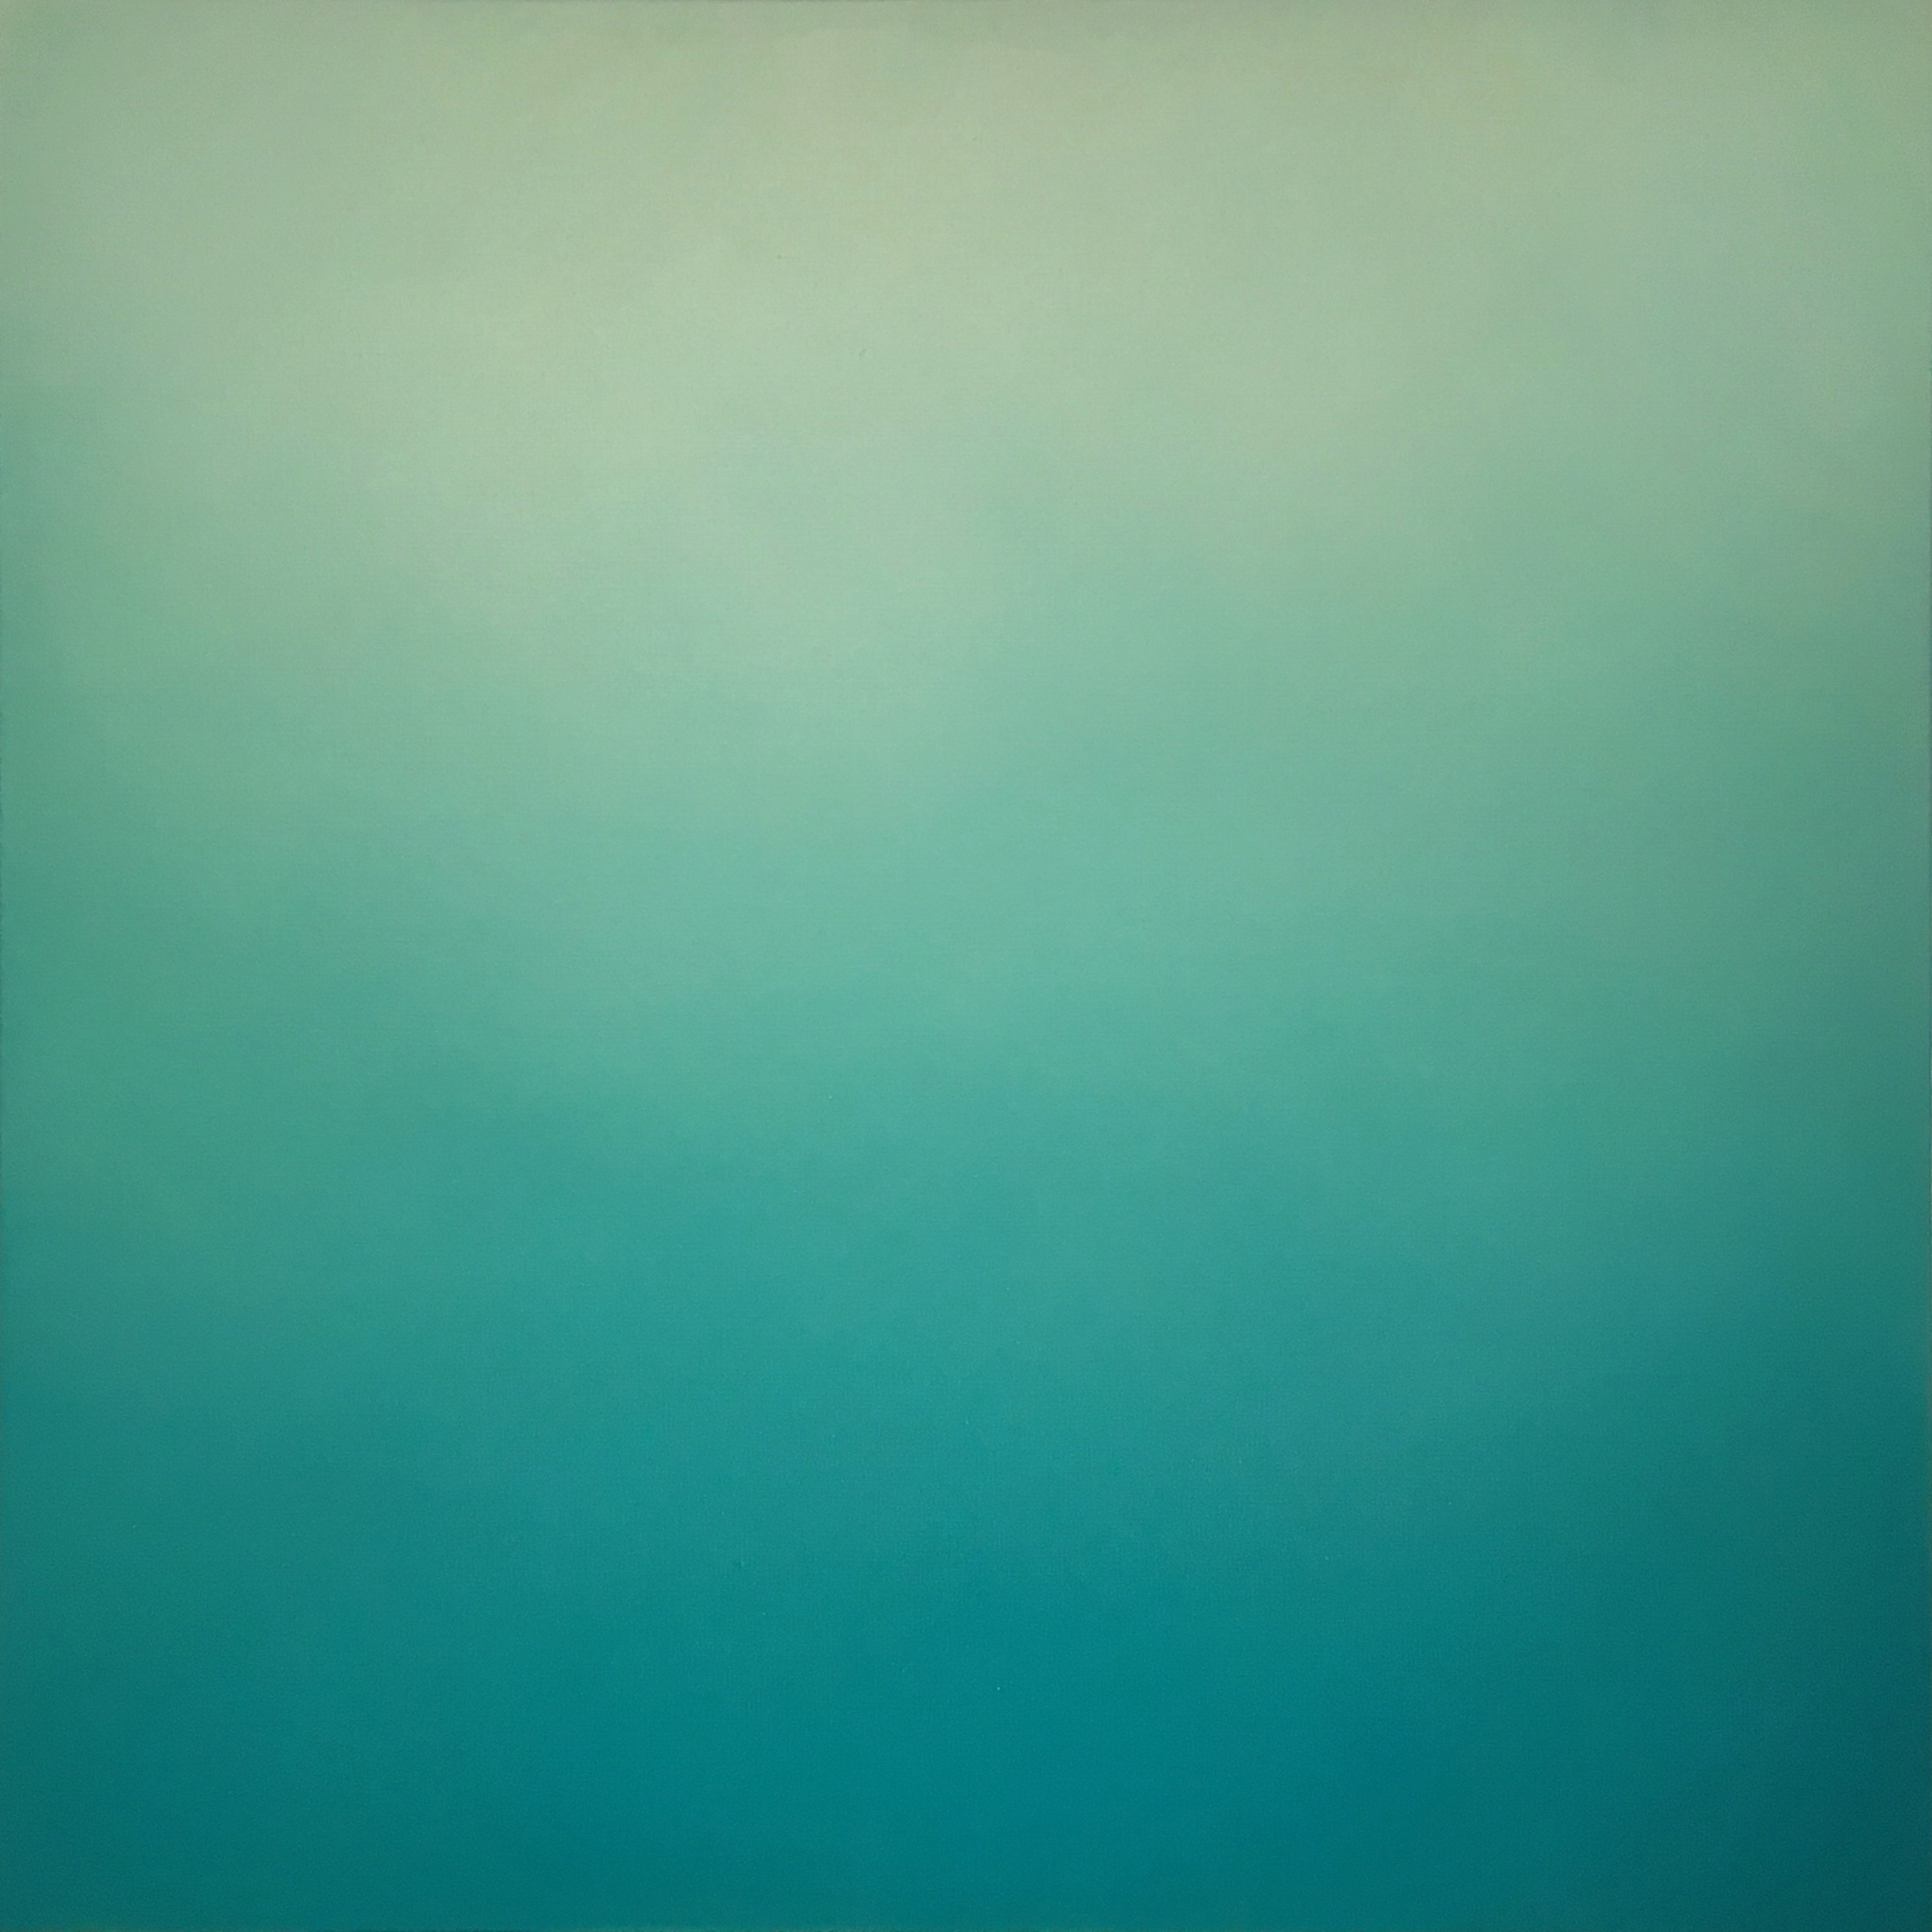 """Silent Search - No. 44, 2015, acrylic on canvas, 30"""" x 30"""""""